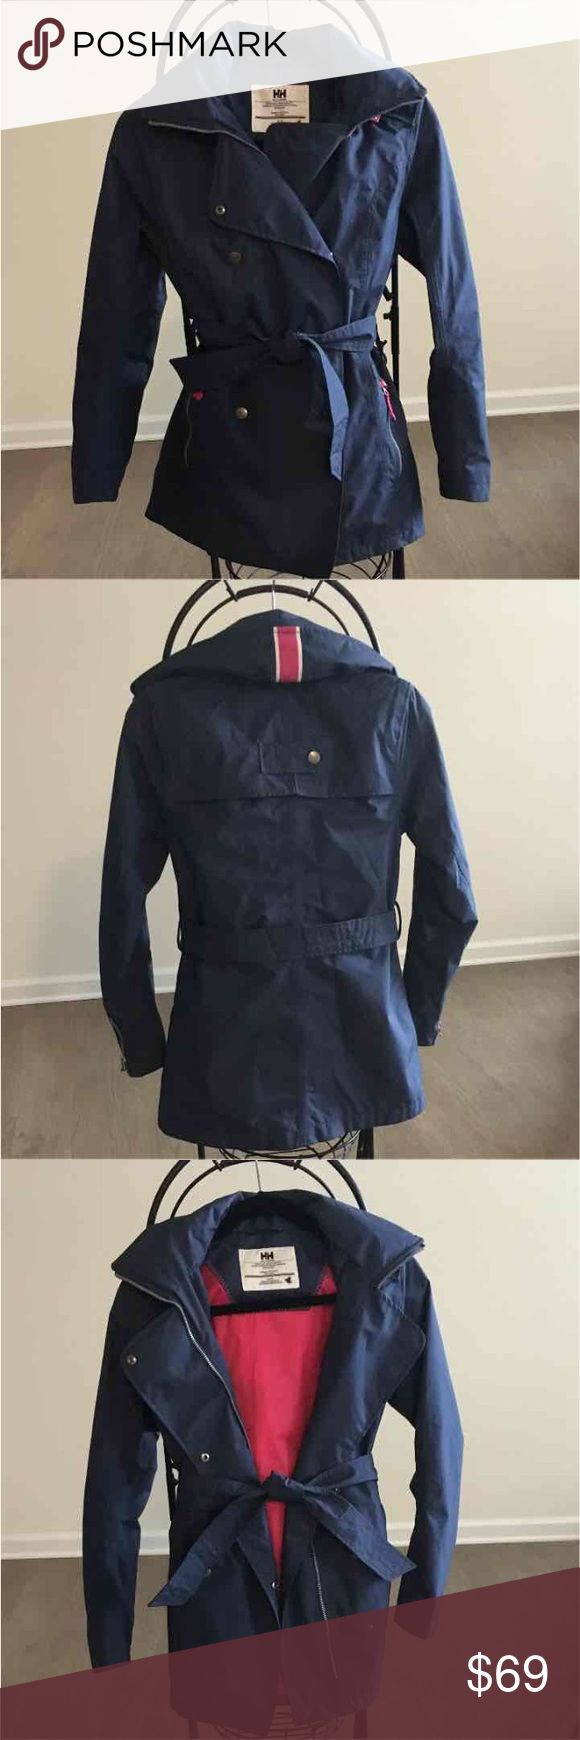 Helly Hansen Trenchcoat Worn a few times OG: $198 Link: https://www.amazon.com/Helly-Hansen-Womens-Welsey-Trench/dp/B011IS7PQO?th=1&psc=1 Helly Hansen Jackets & Coats Trench Coats